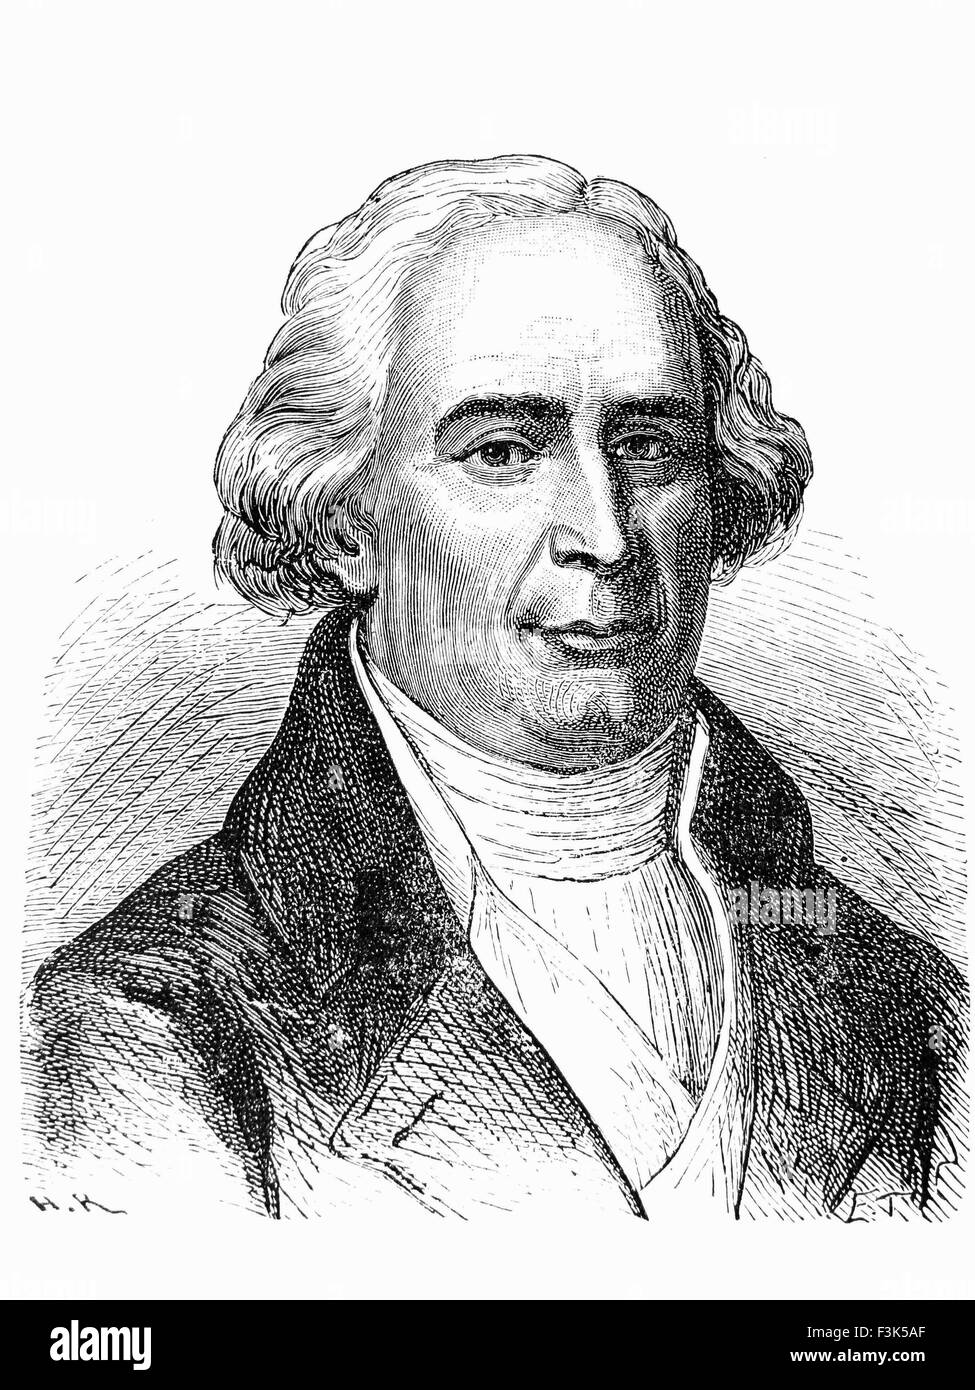 JOSEPH-MICHEL MONTGOLFIER (1740-1810) inventor of the hot-air balloon with his brother Jacques-Etienne - Stock Image